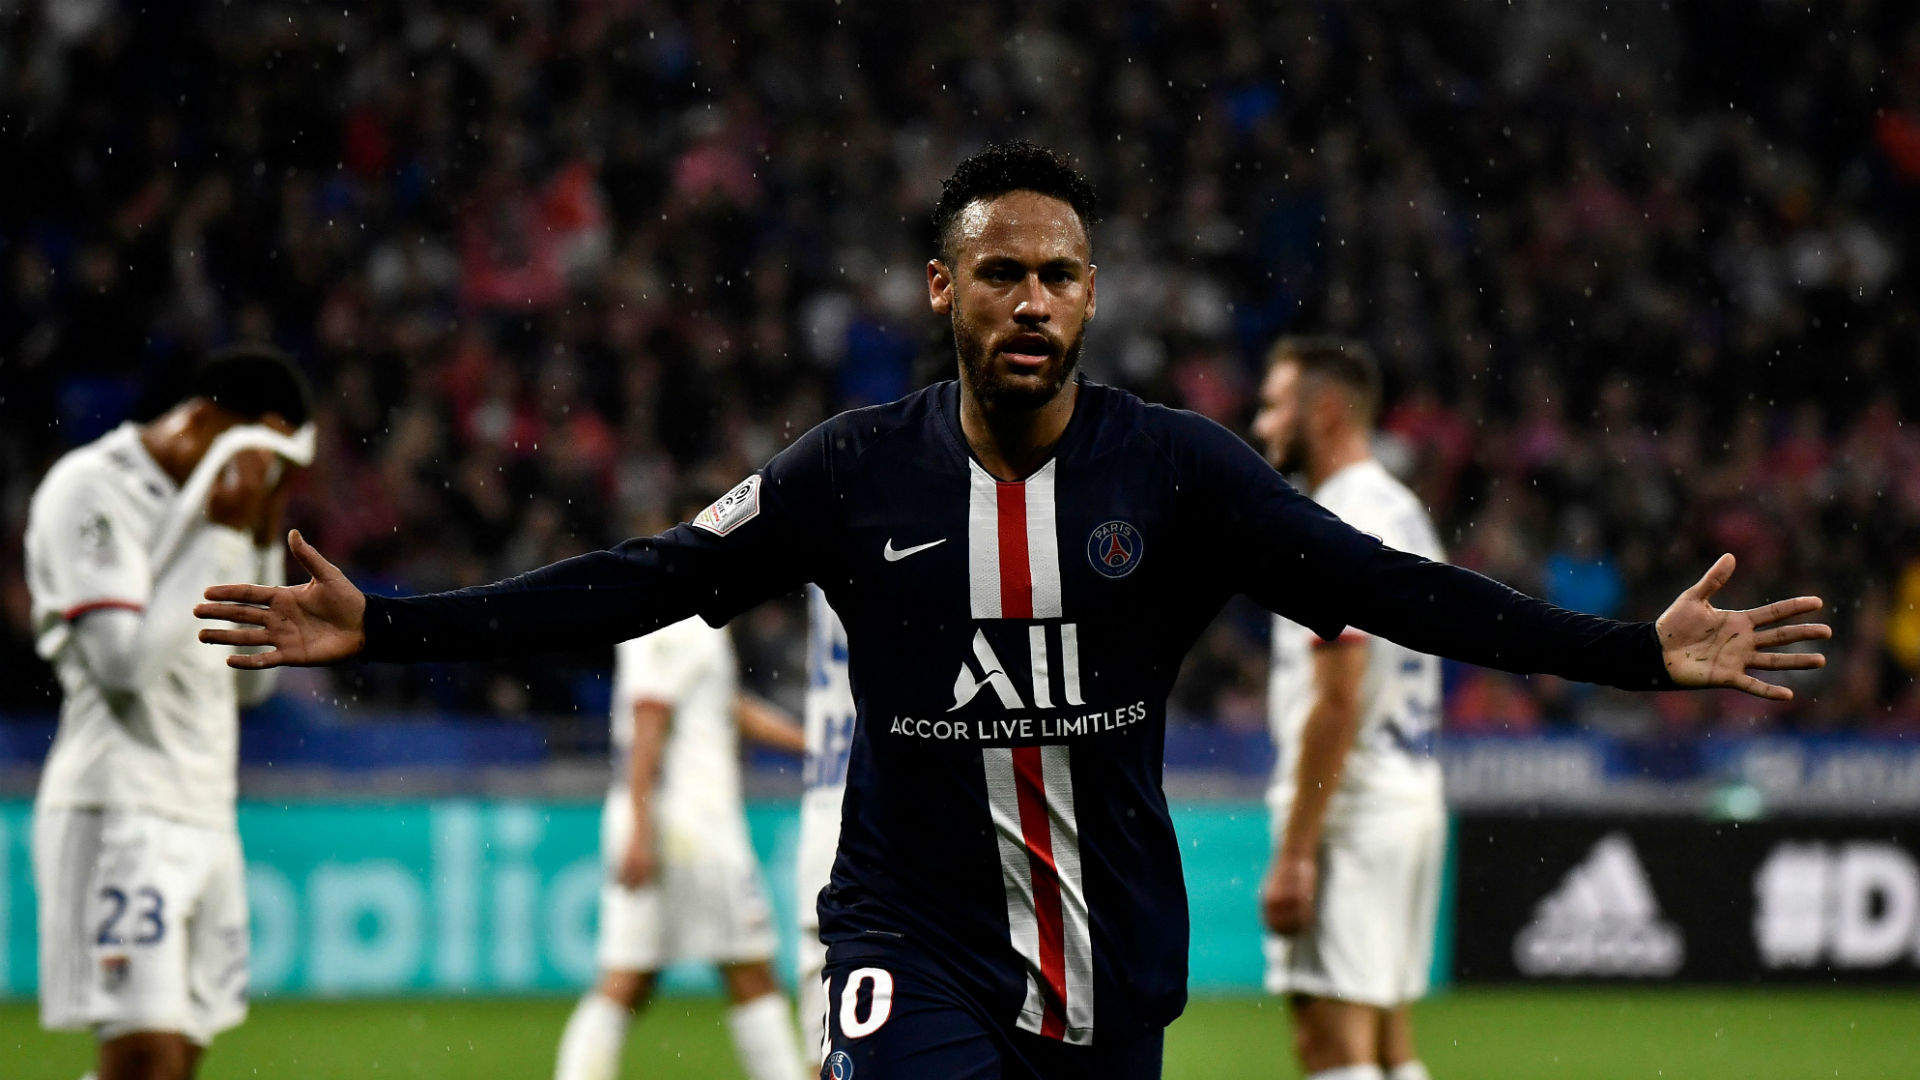 Ligue 1 report: Lyon 0-1 PSG